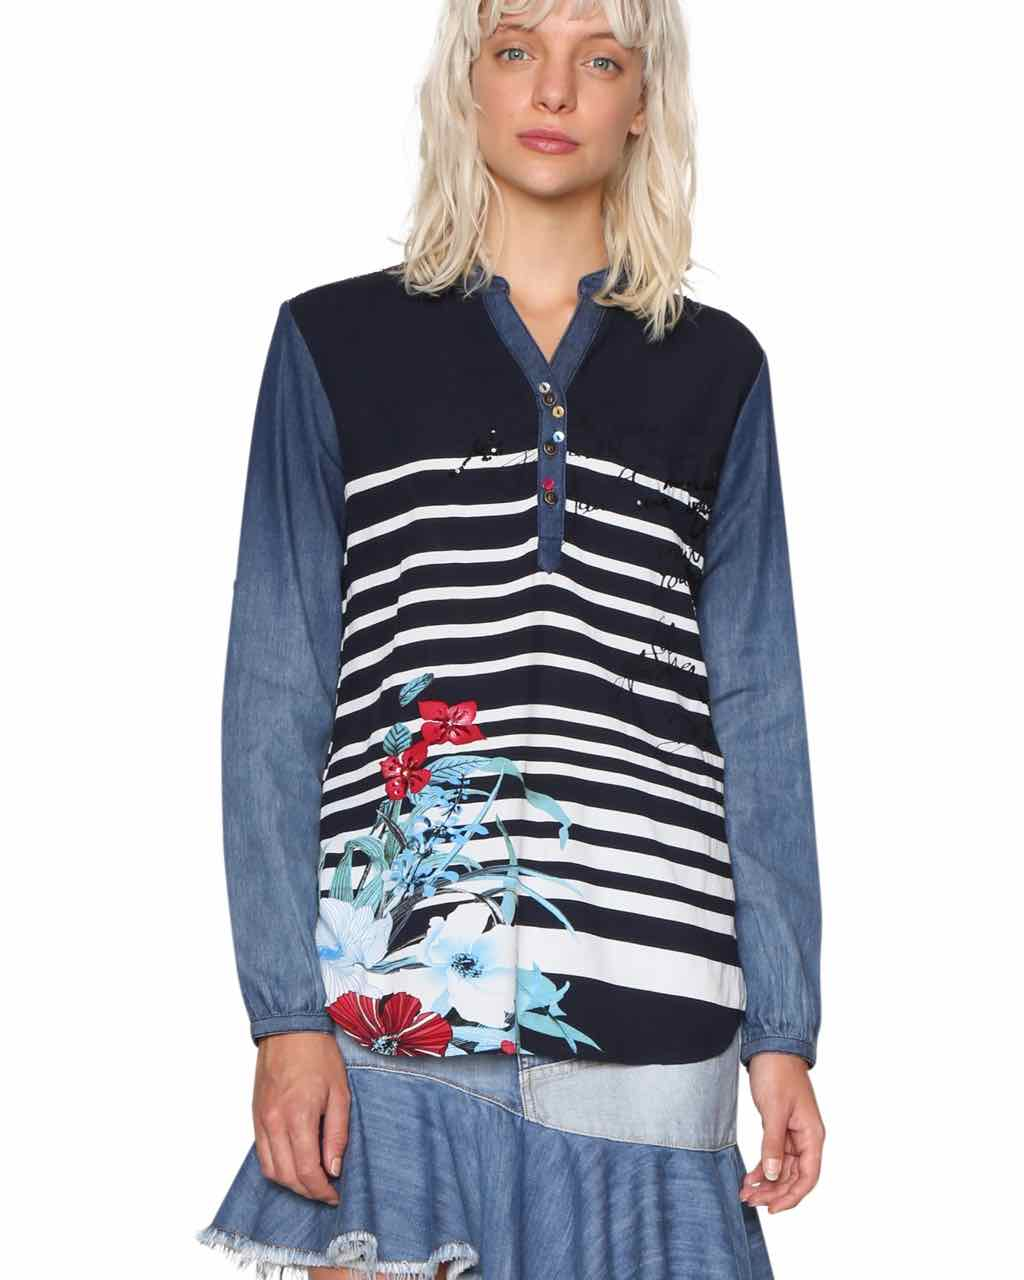 18SWBW07_5000 Desigual Blouse Judith Buy Online